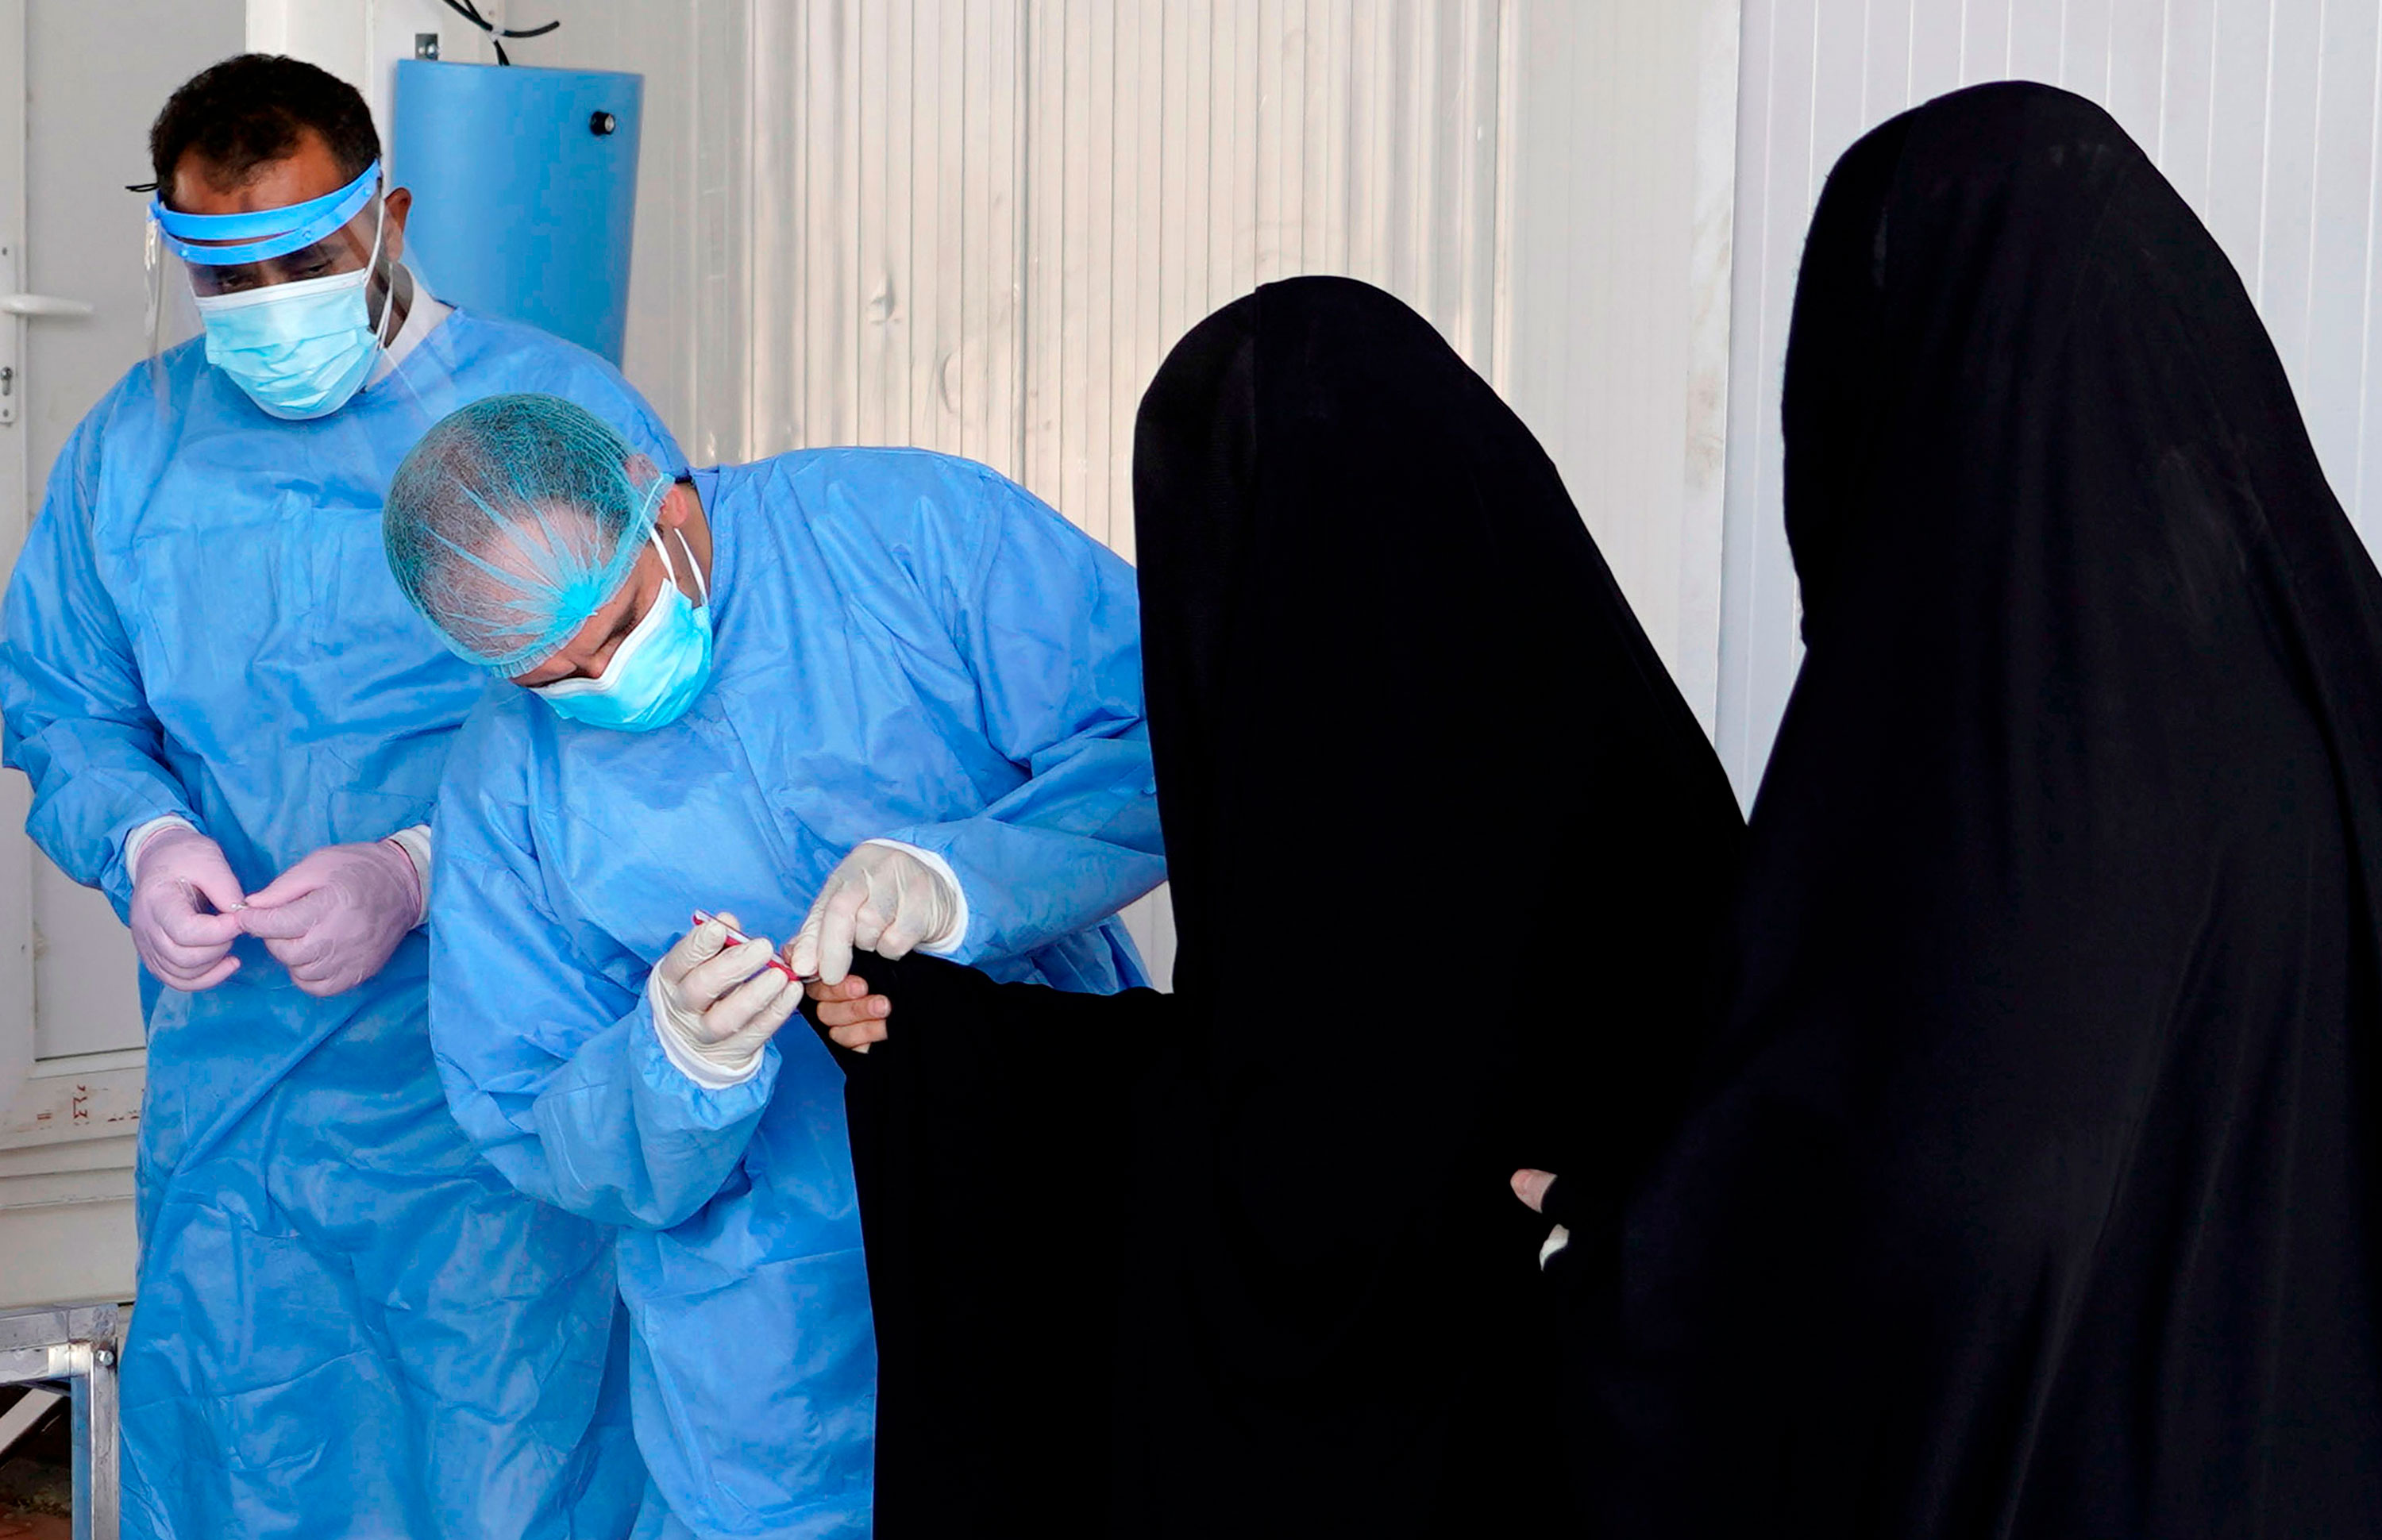 A health worker administers a coronavirus test at a testing facility Najaf, Iraq, on July 15.